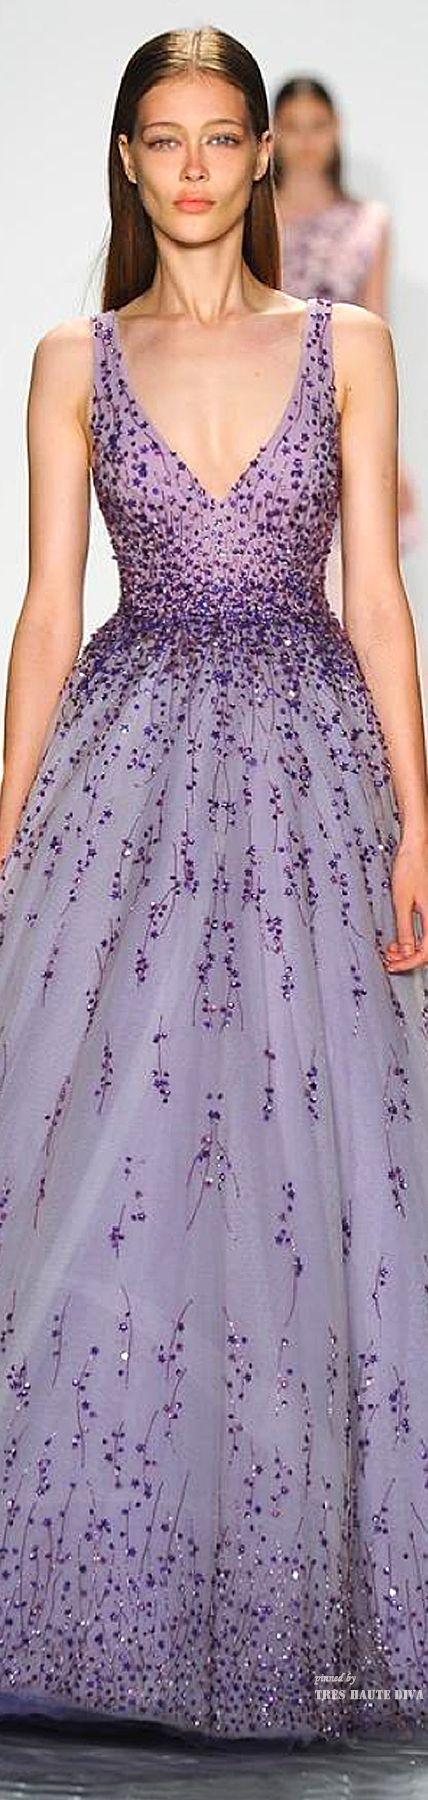 #NYFW Monique Lhuillier Spring 2015 RTW. How perfectly lovely in both color and style. Would make a great bridesmaid dress.